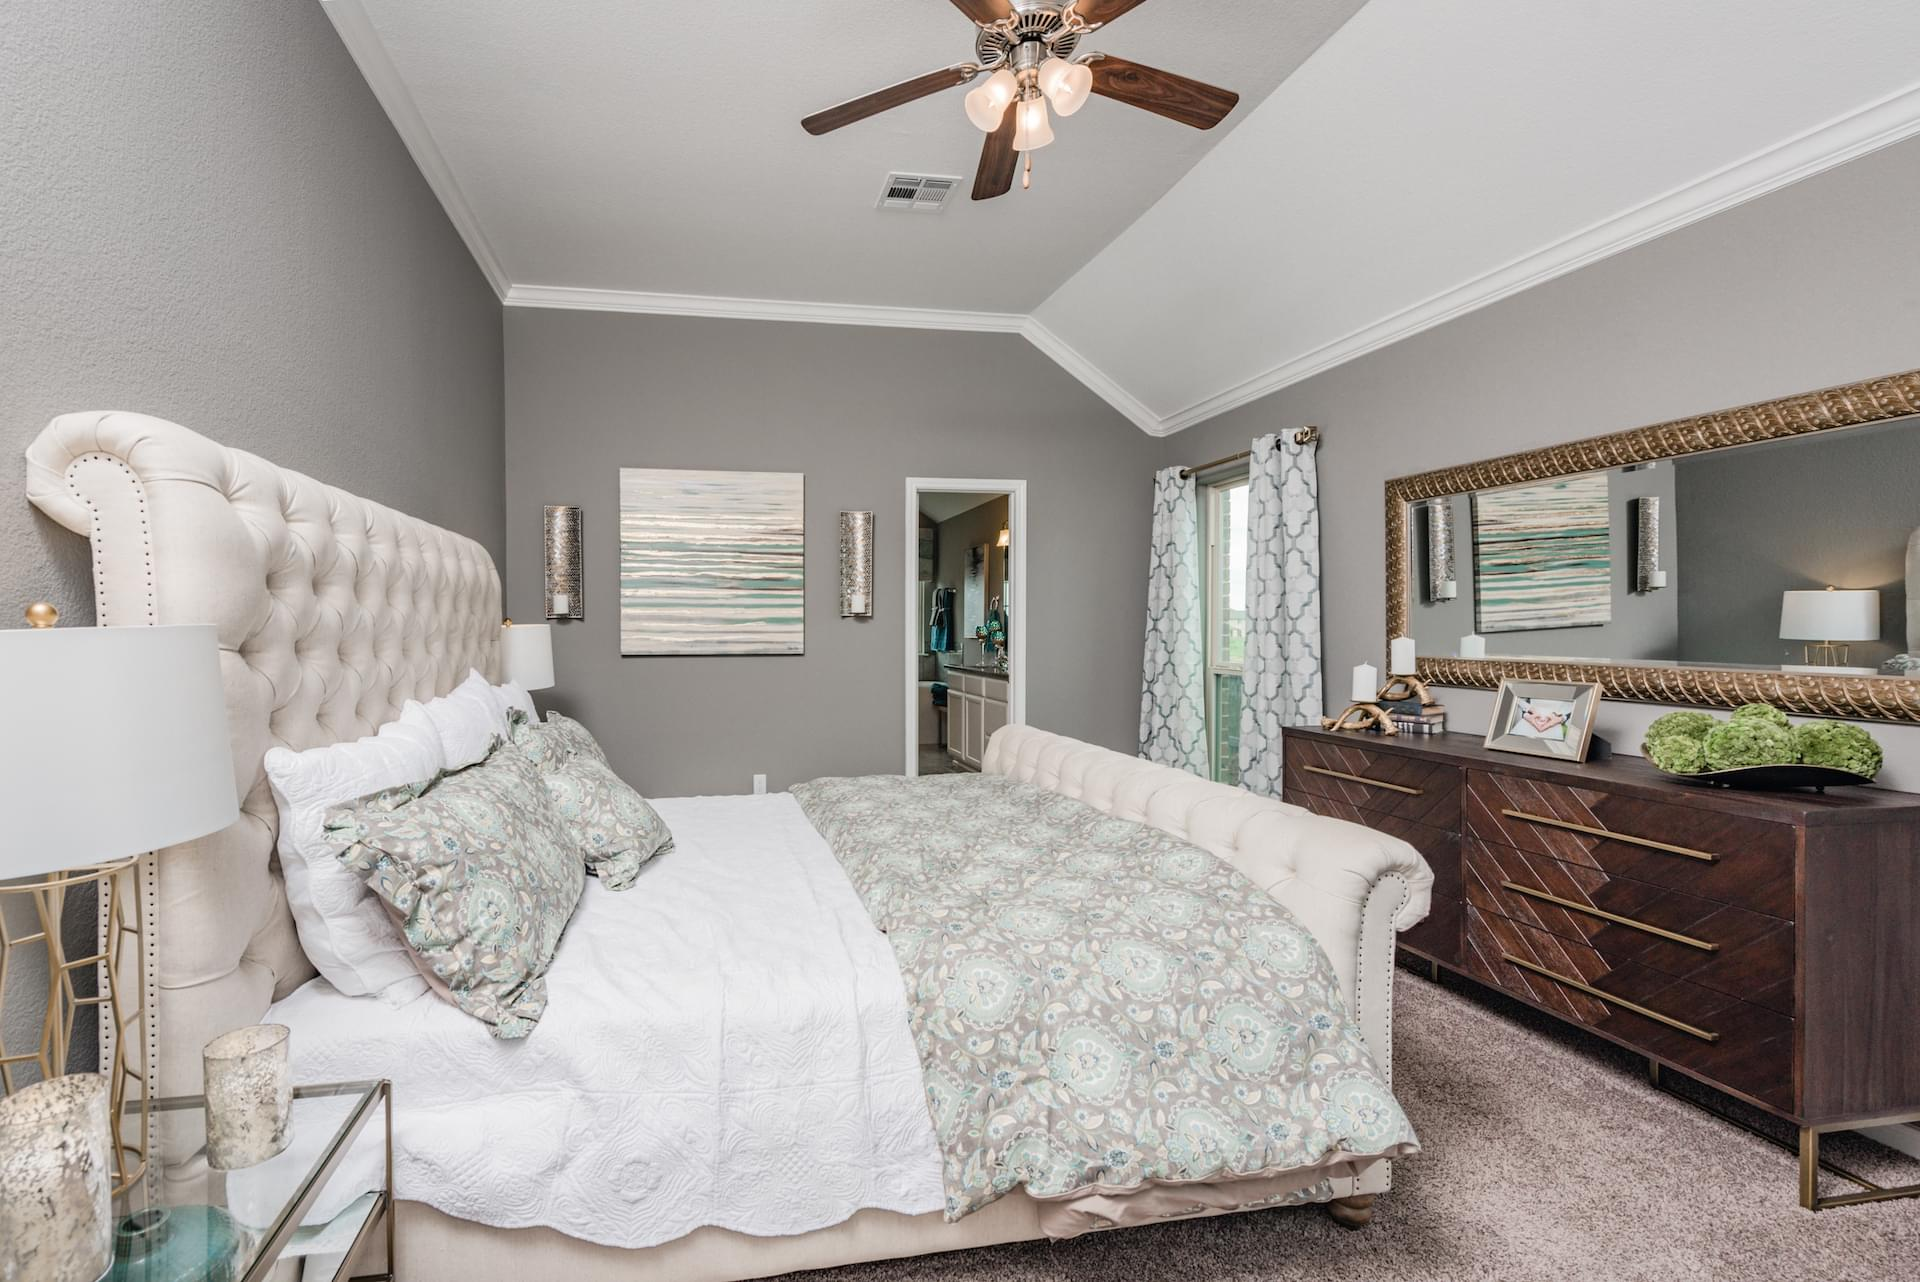 4br New Home in Temple, TX